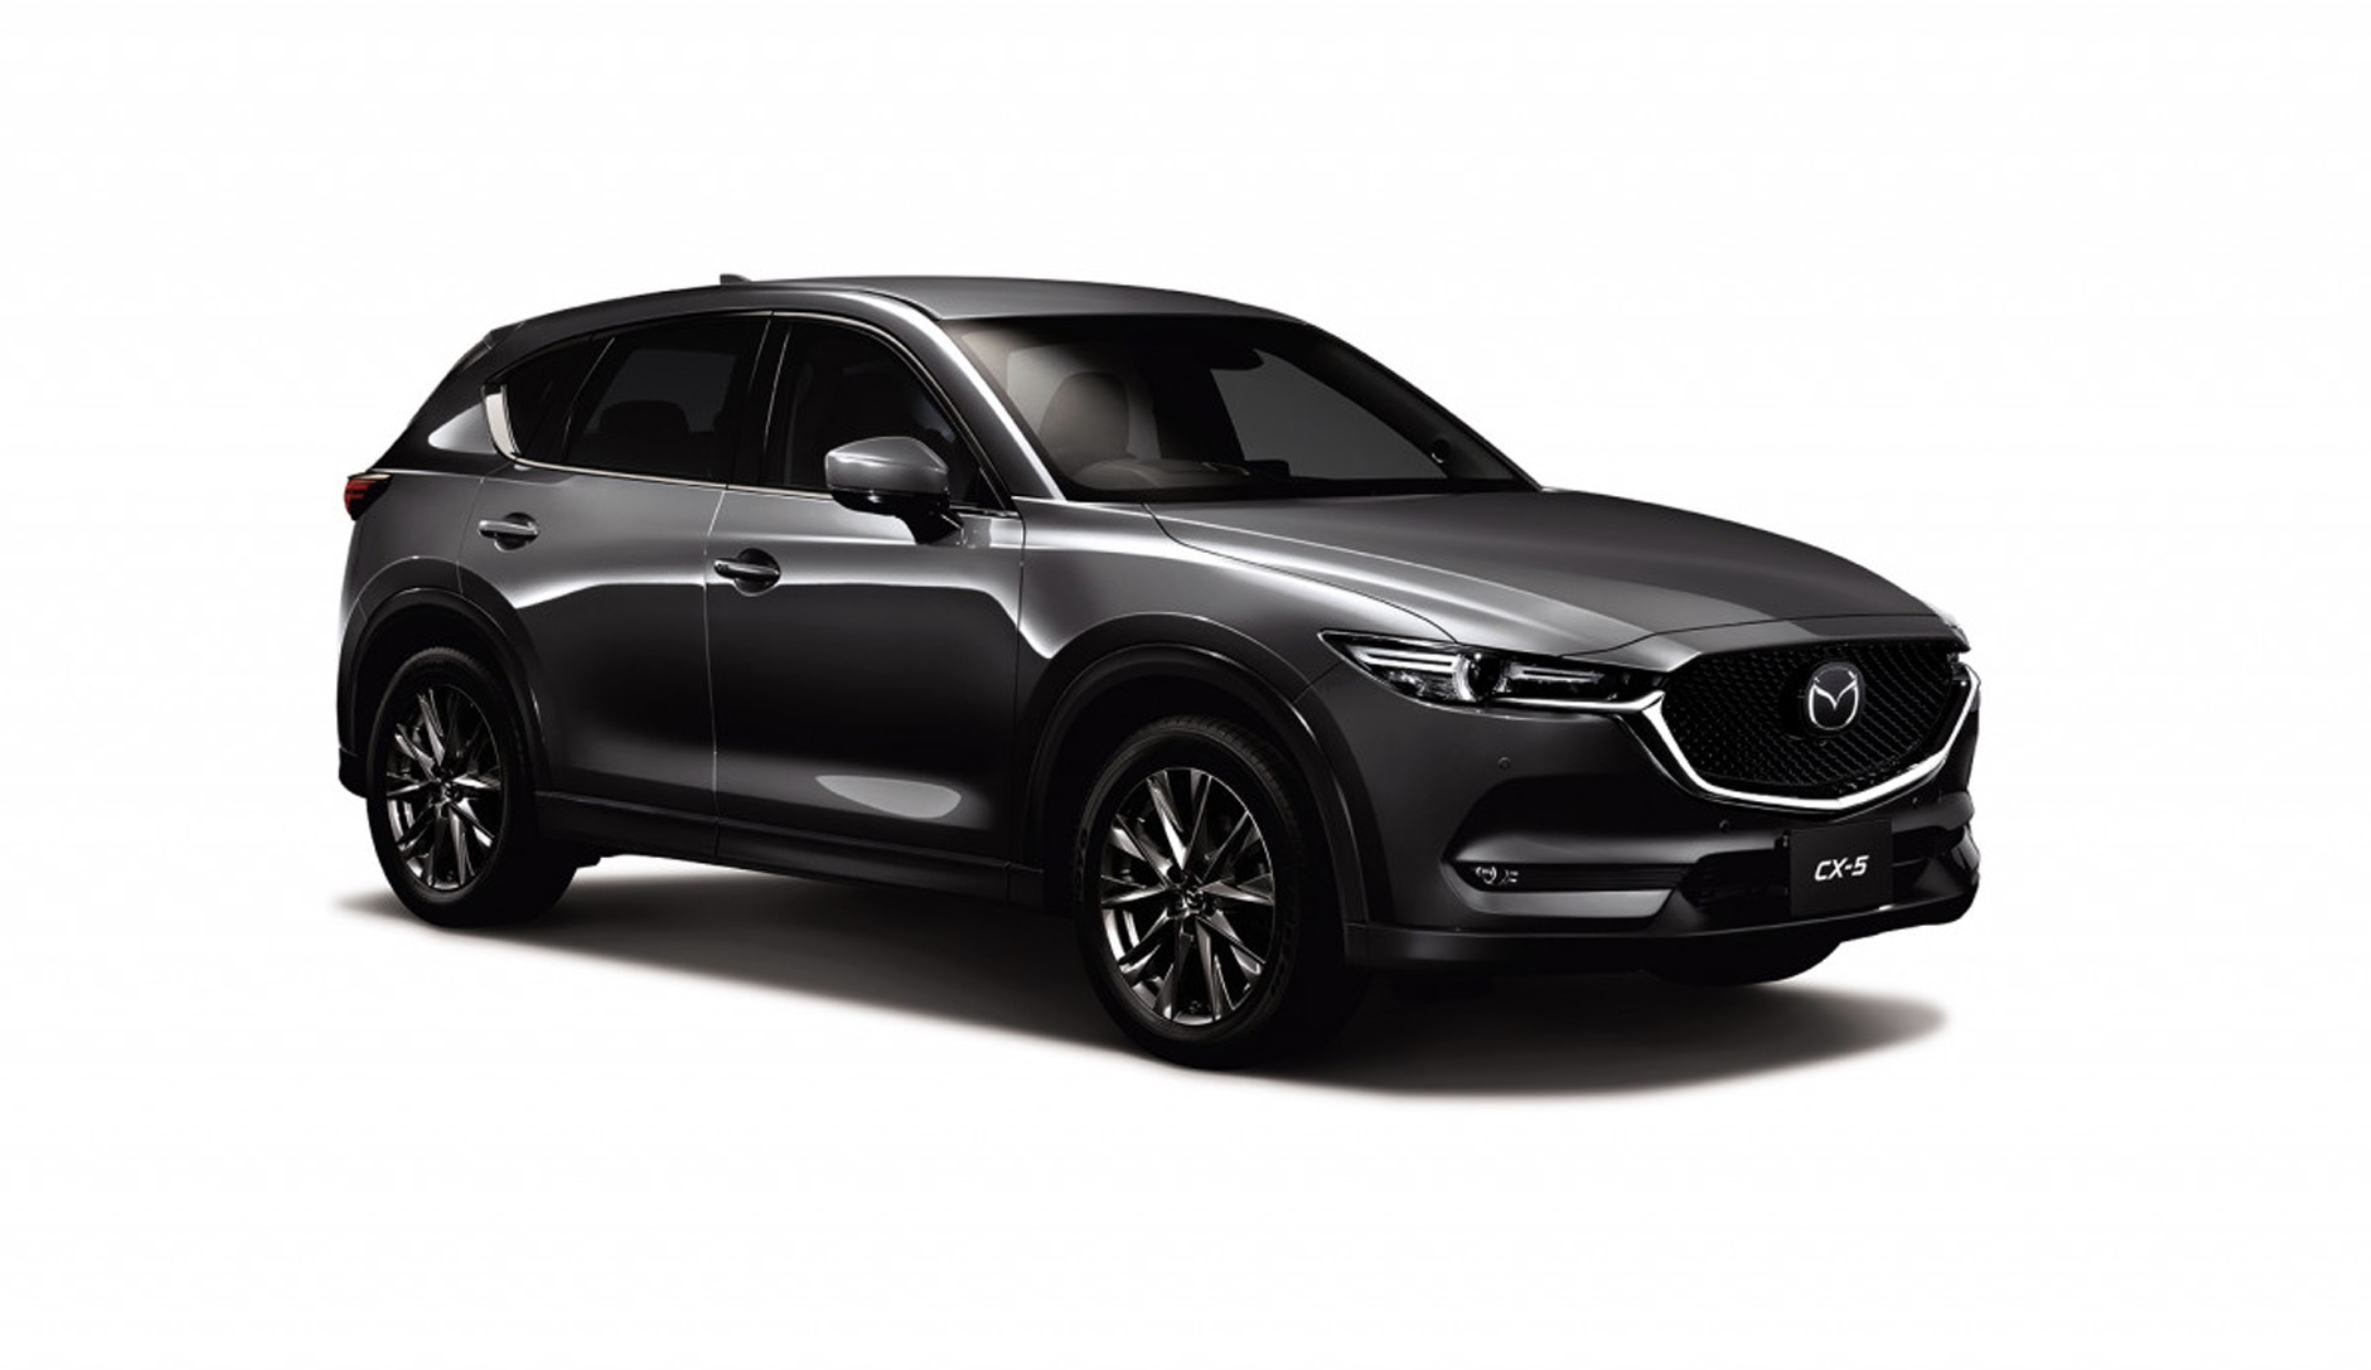 18 Great 2020 Mazda Cx 5 Turbo First Drive for 2020 Mazda Cx 5 Turbo